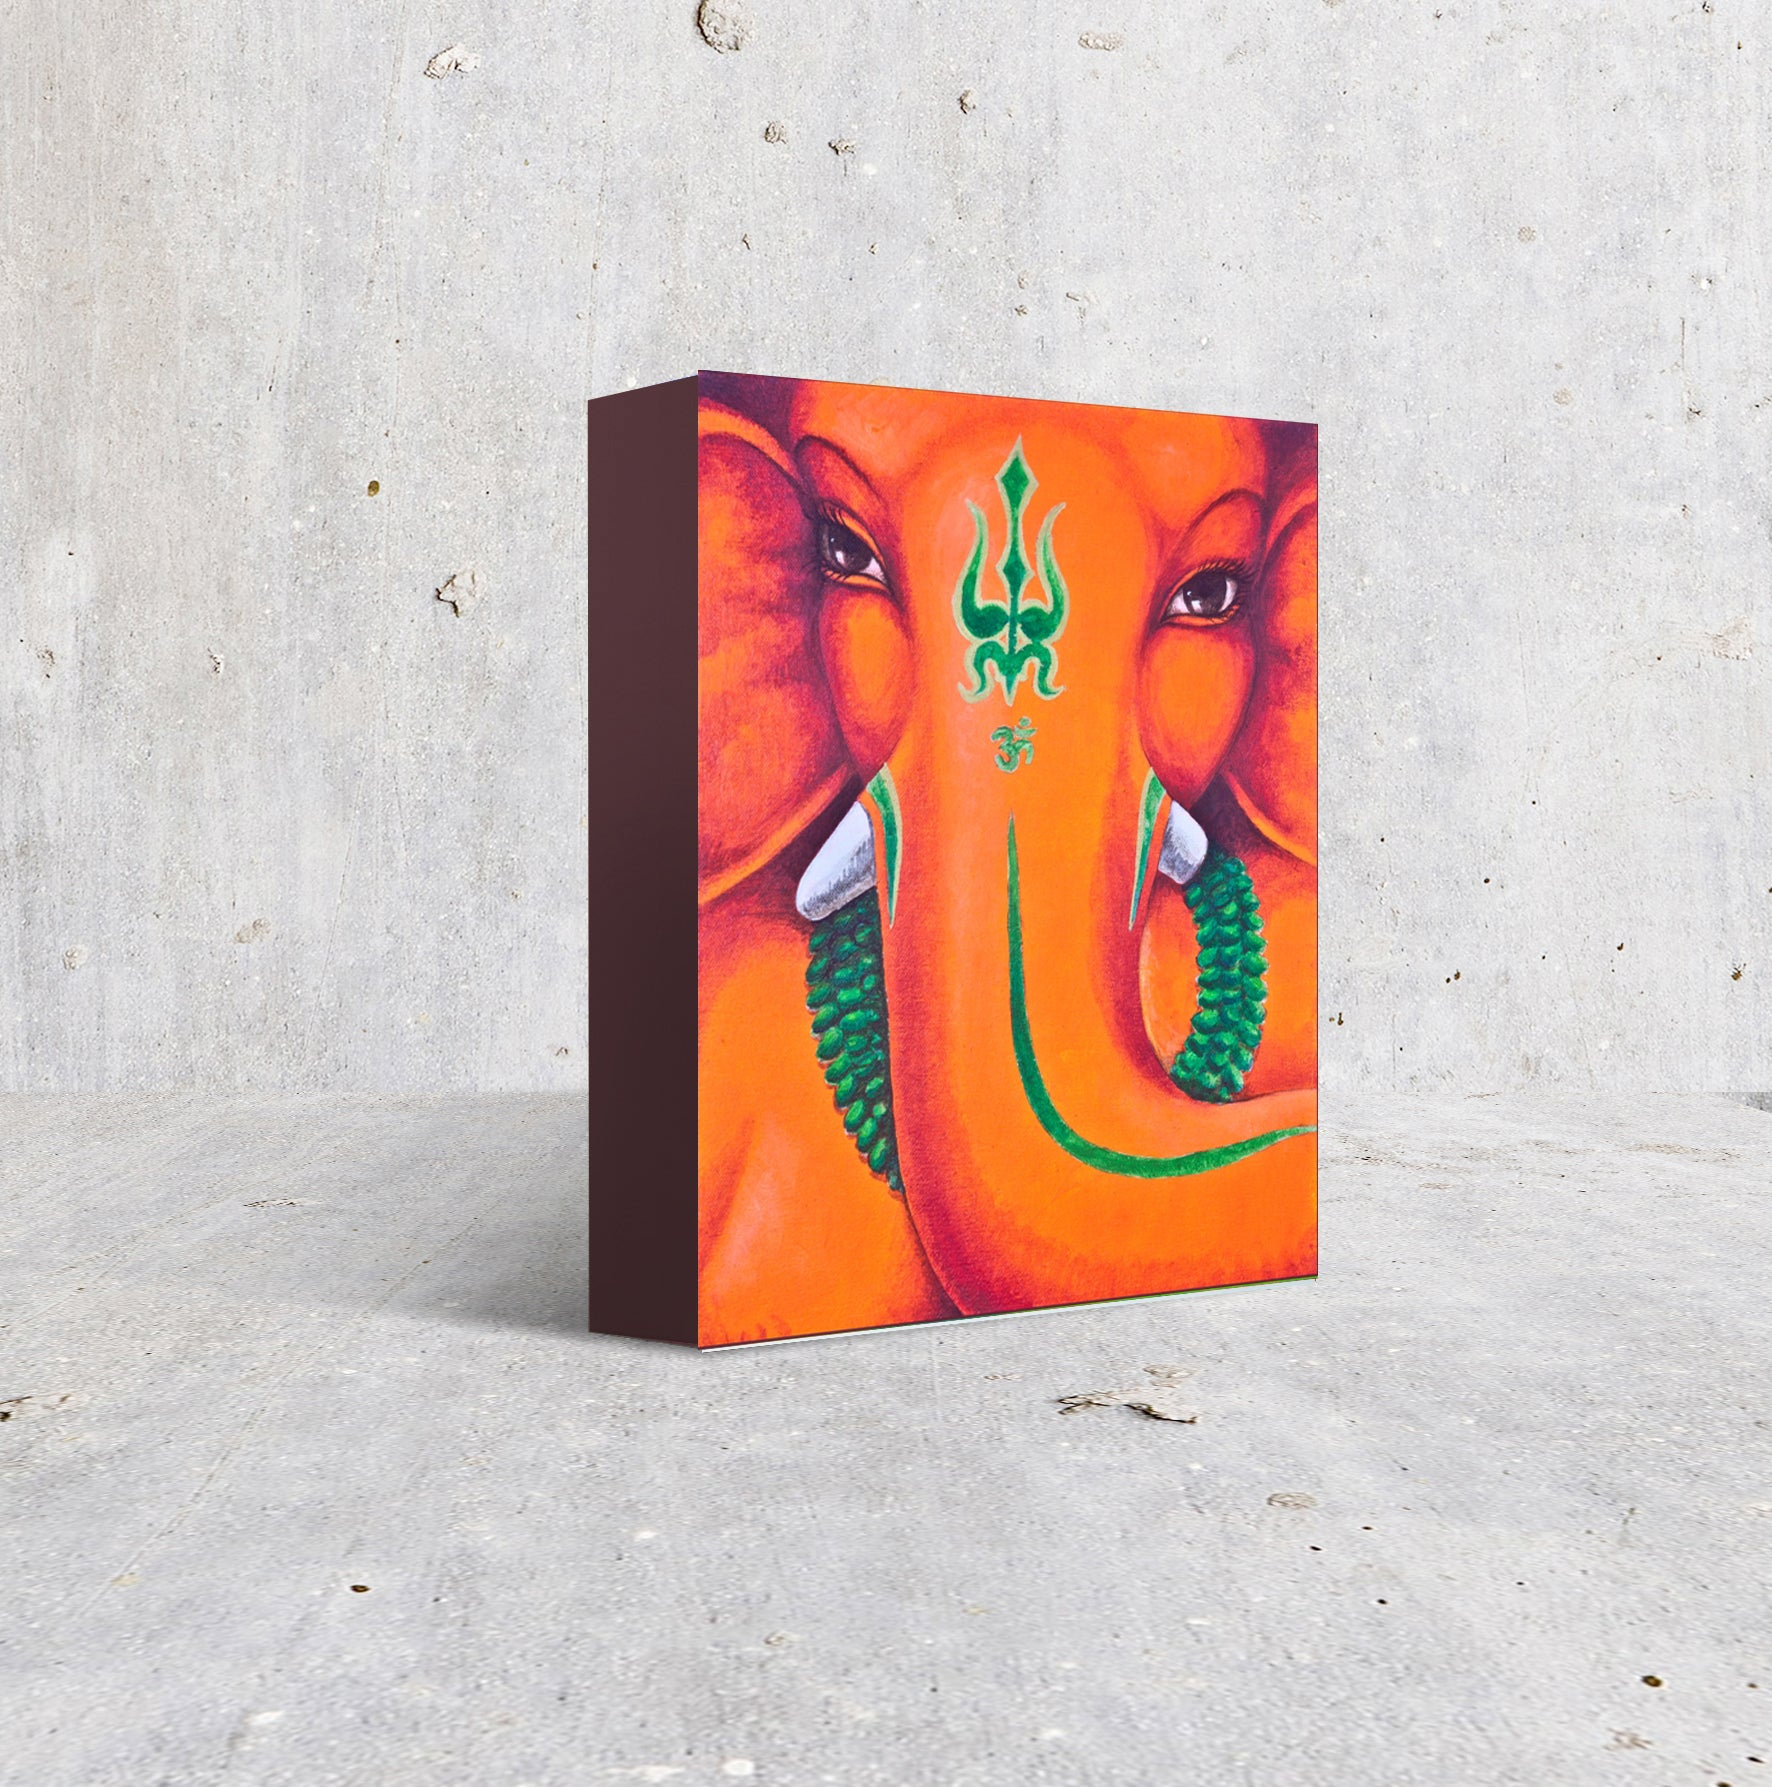 2- Reproduction on small box frame - Moods in Orange and Green